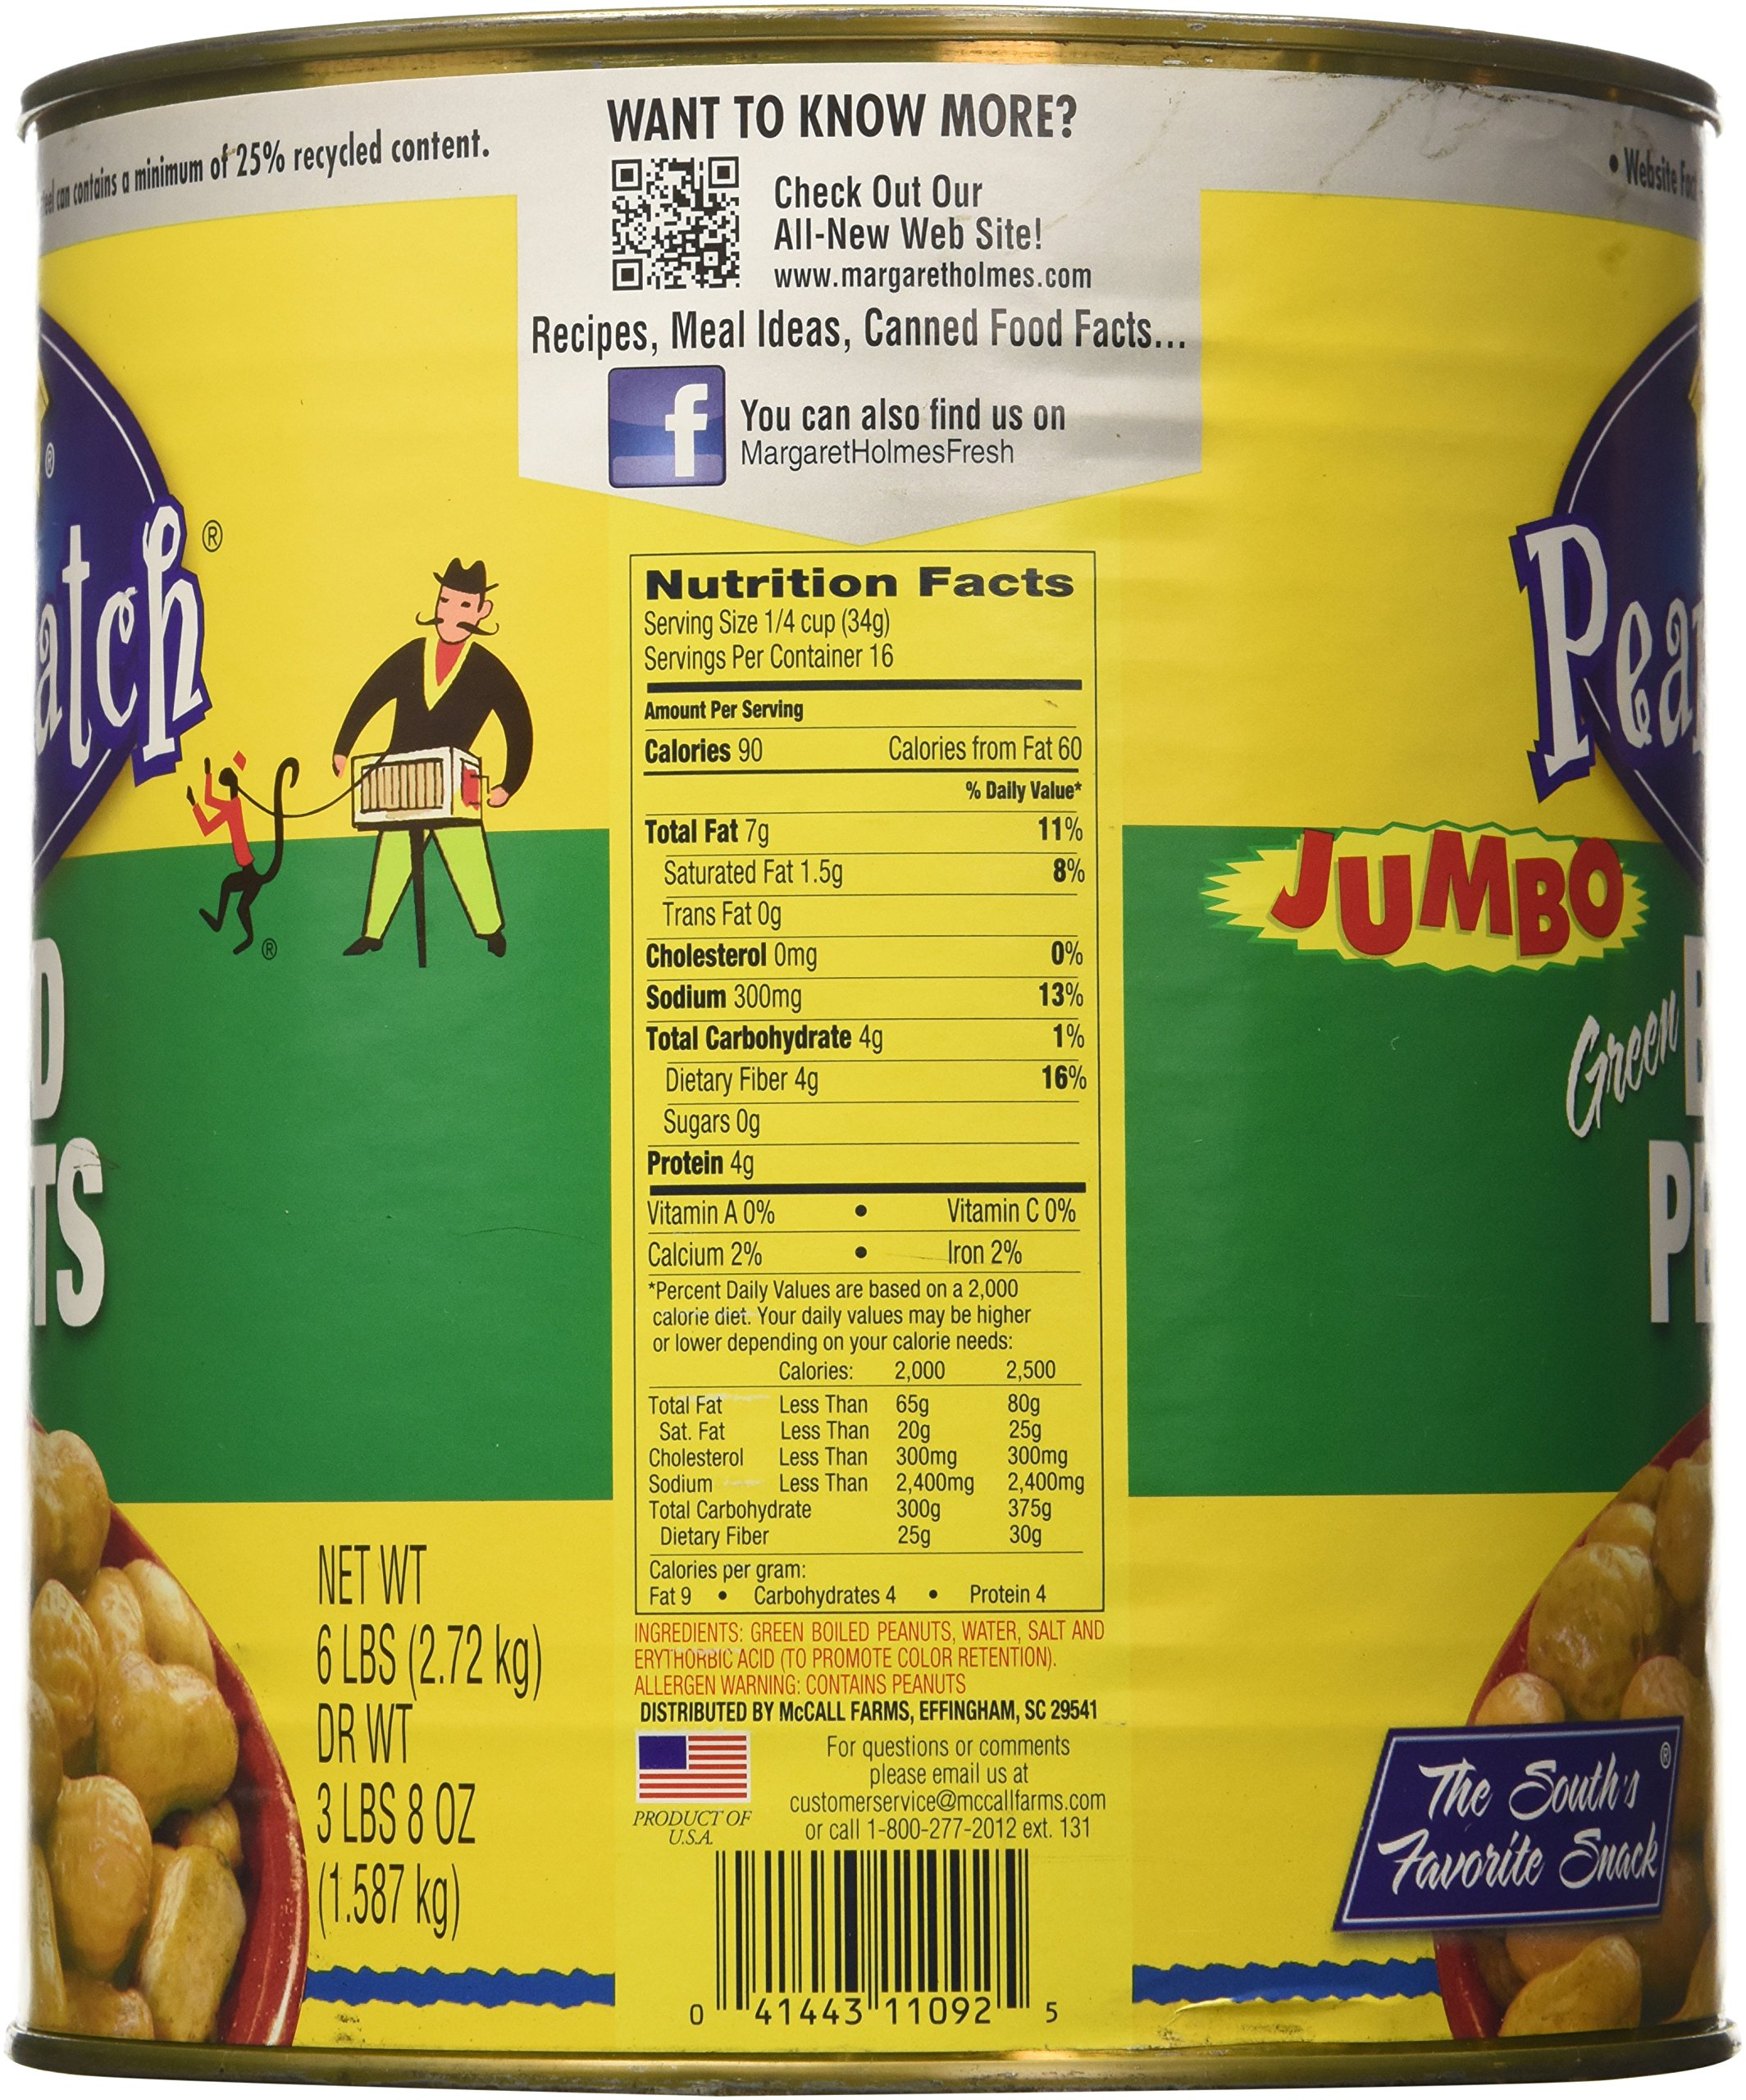 Margaret Holmes Green Boiled Peanuts - 6lb - CASE PACK OF 2 by USA (Image #4)